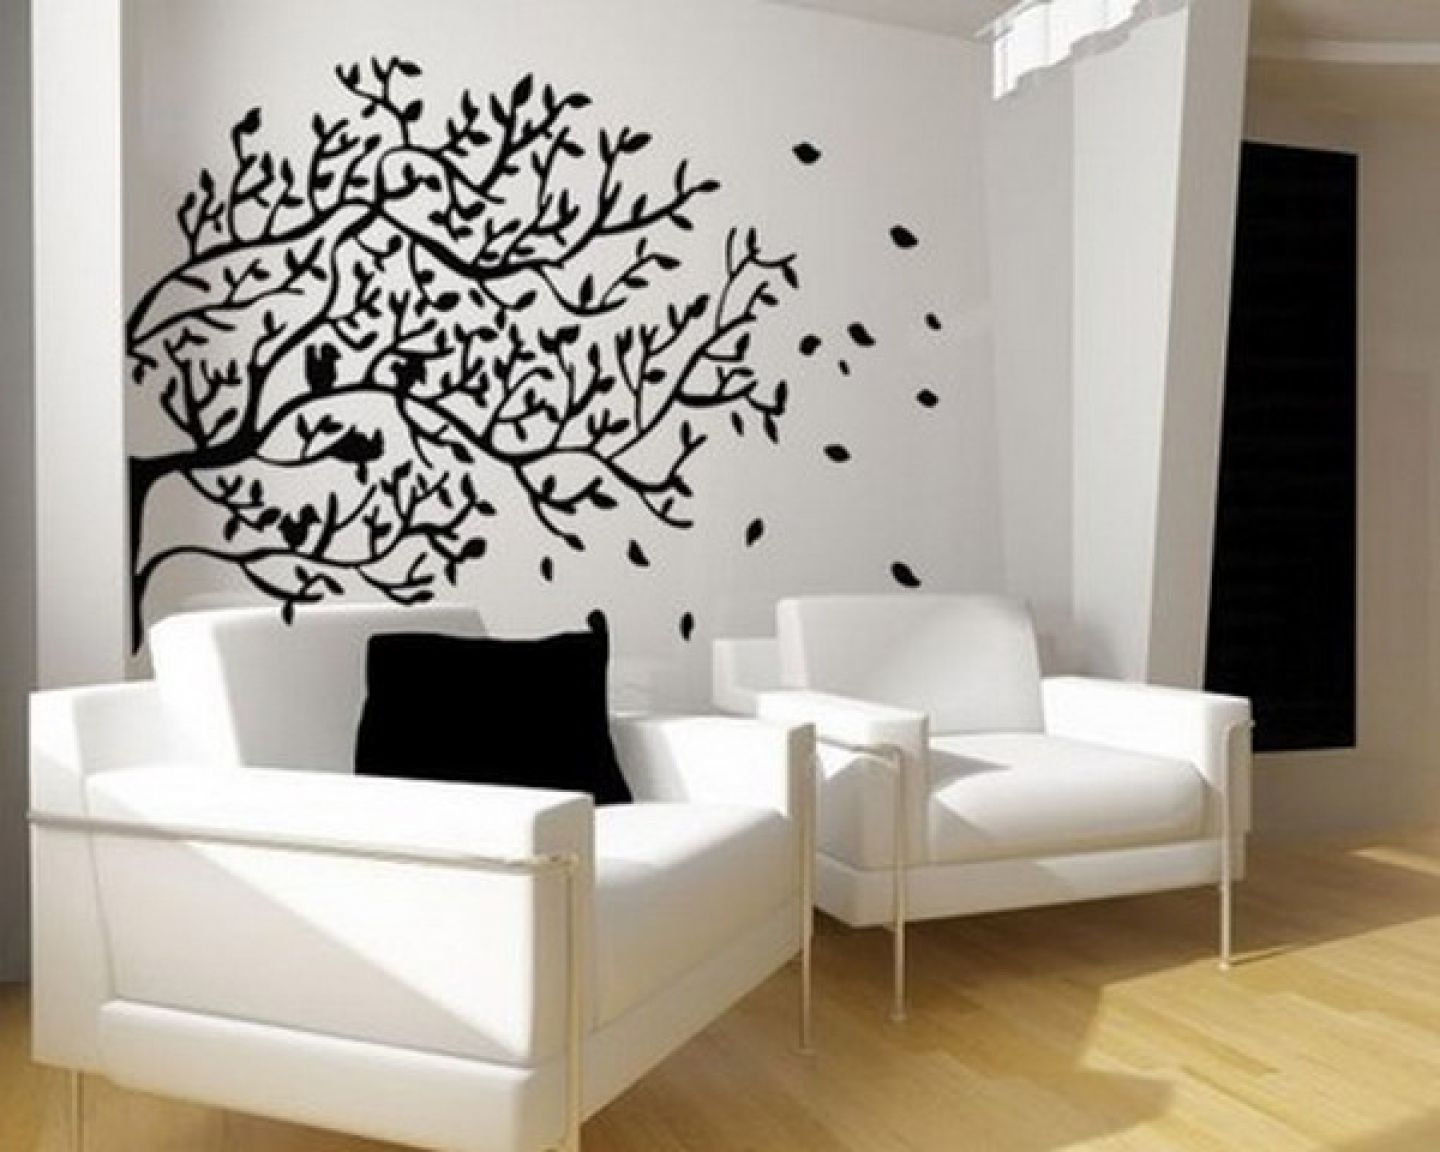 Painting walls ideas wall decals - Luxury Living Room Tree Wall Murals Sticker Decorations Image